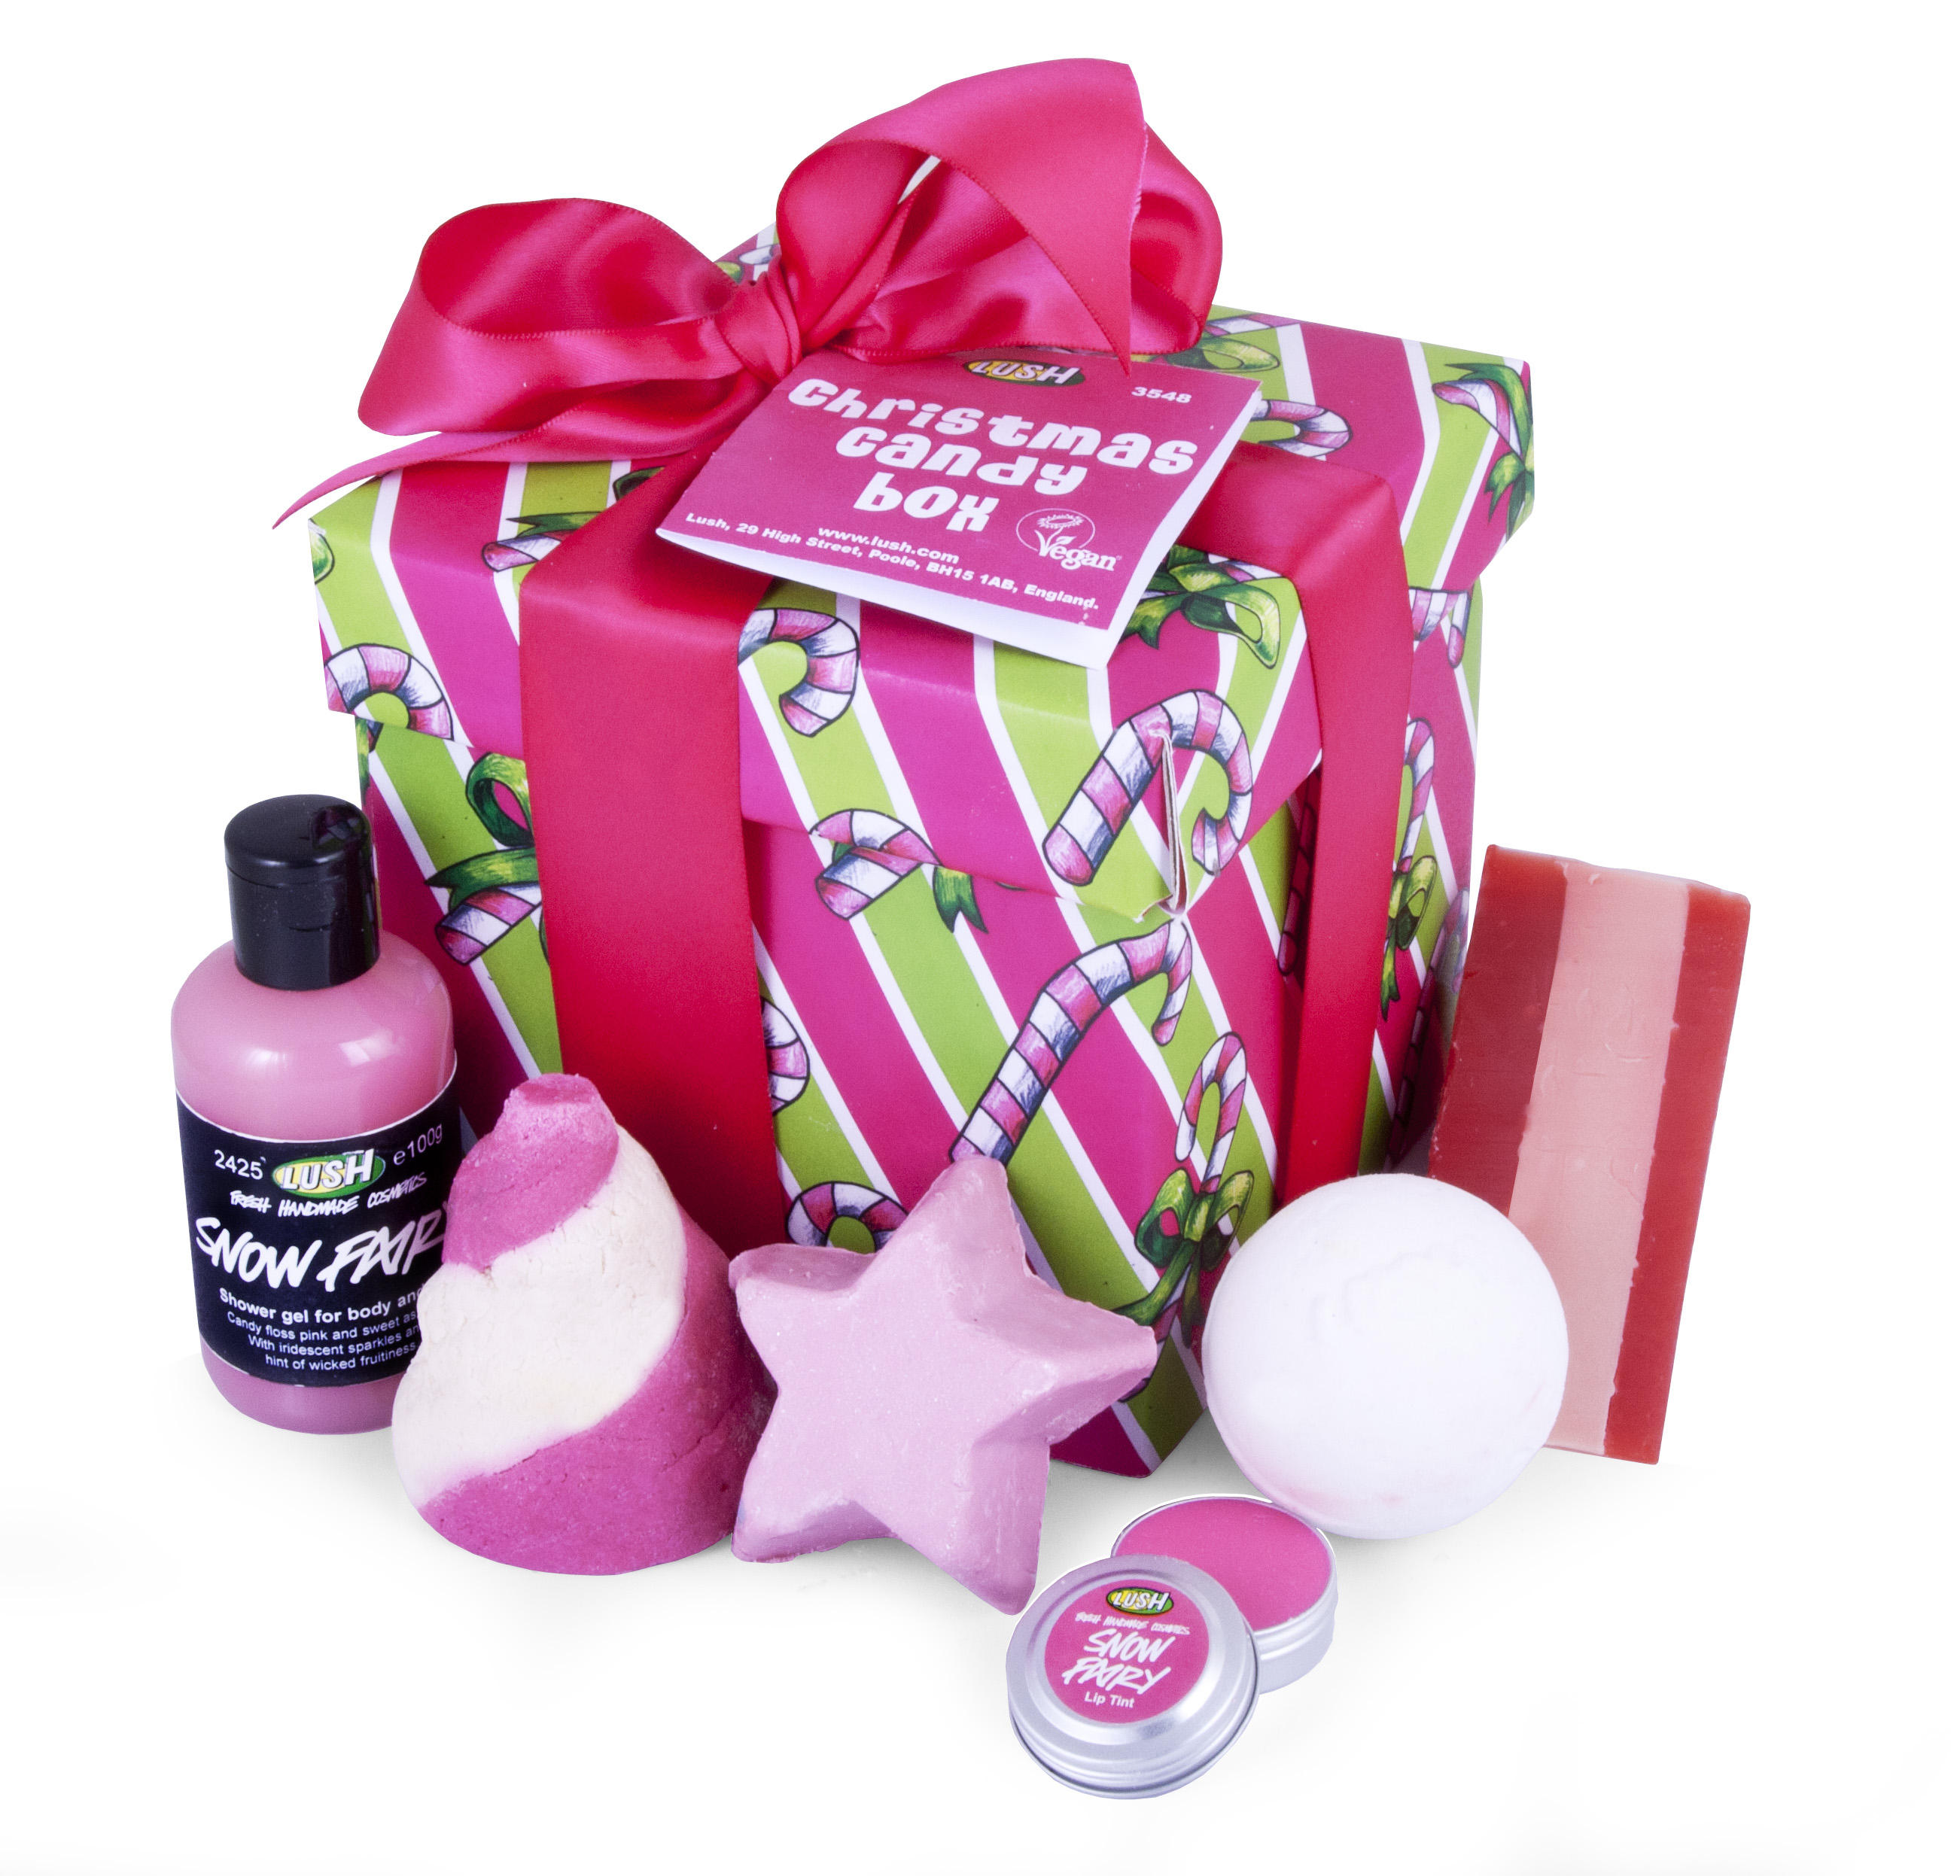 Shower Gel As Bubble Bath Lush Holiday Gift Guide Polished Blog